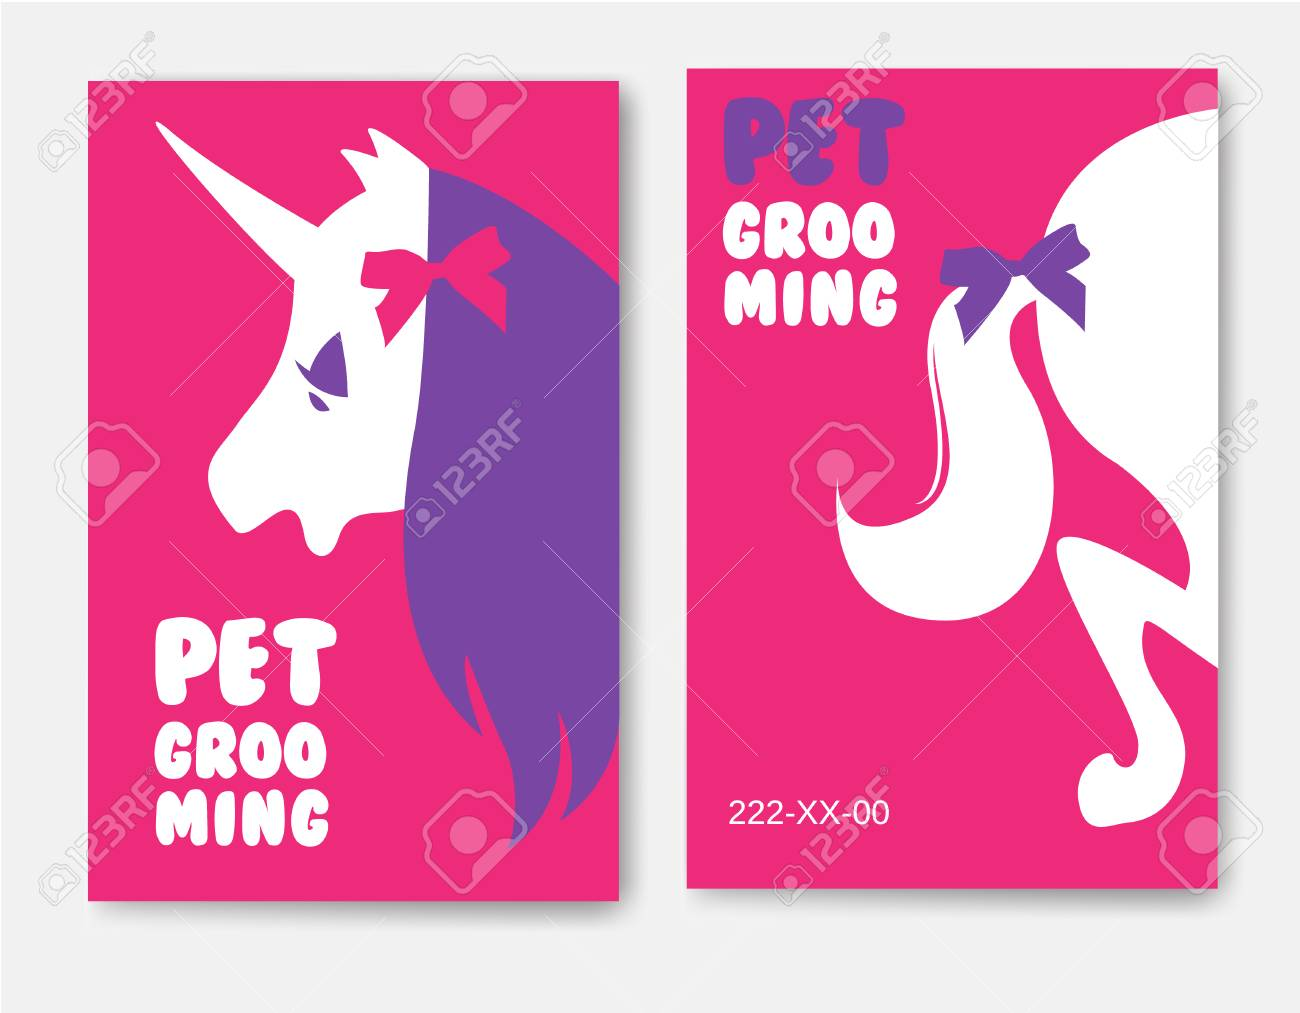 Business Cards Templates Of Grooming Service Pet With Unicorn ...